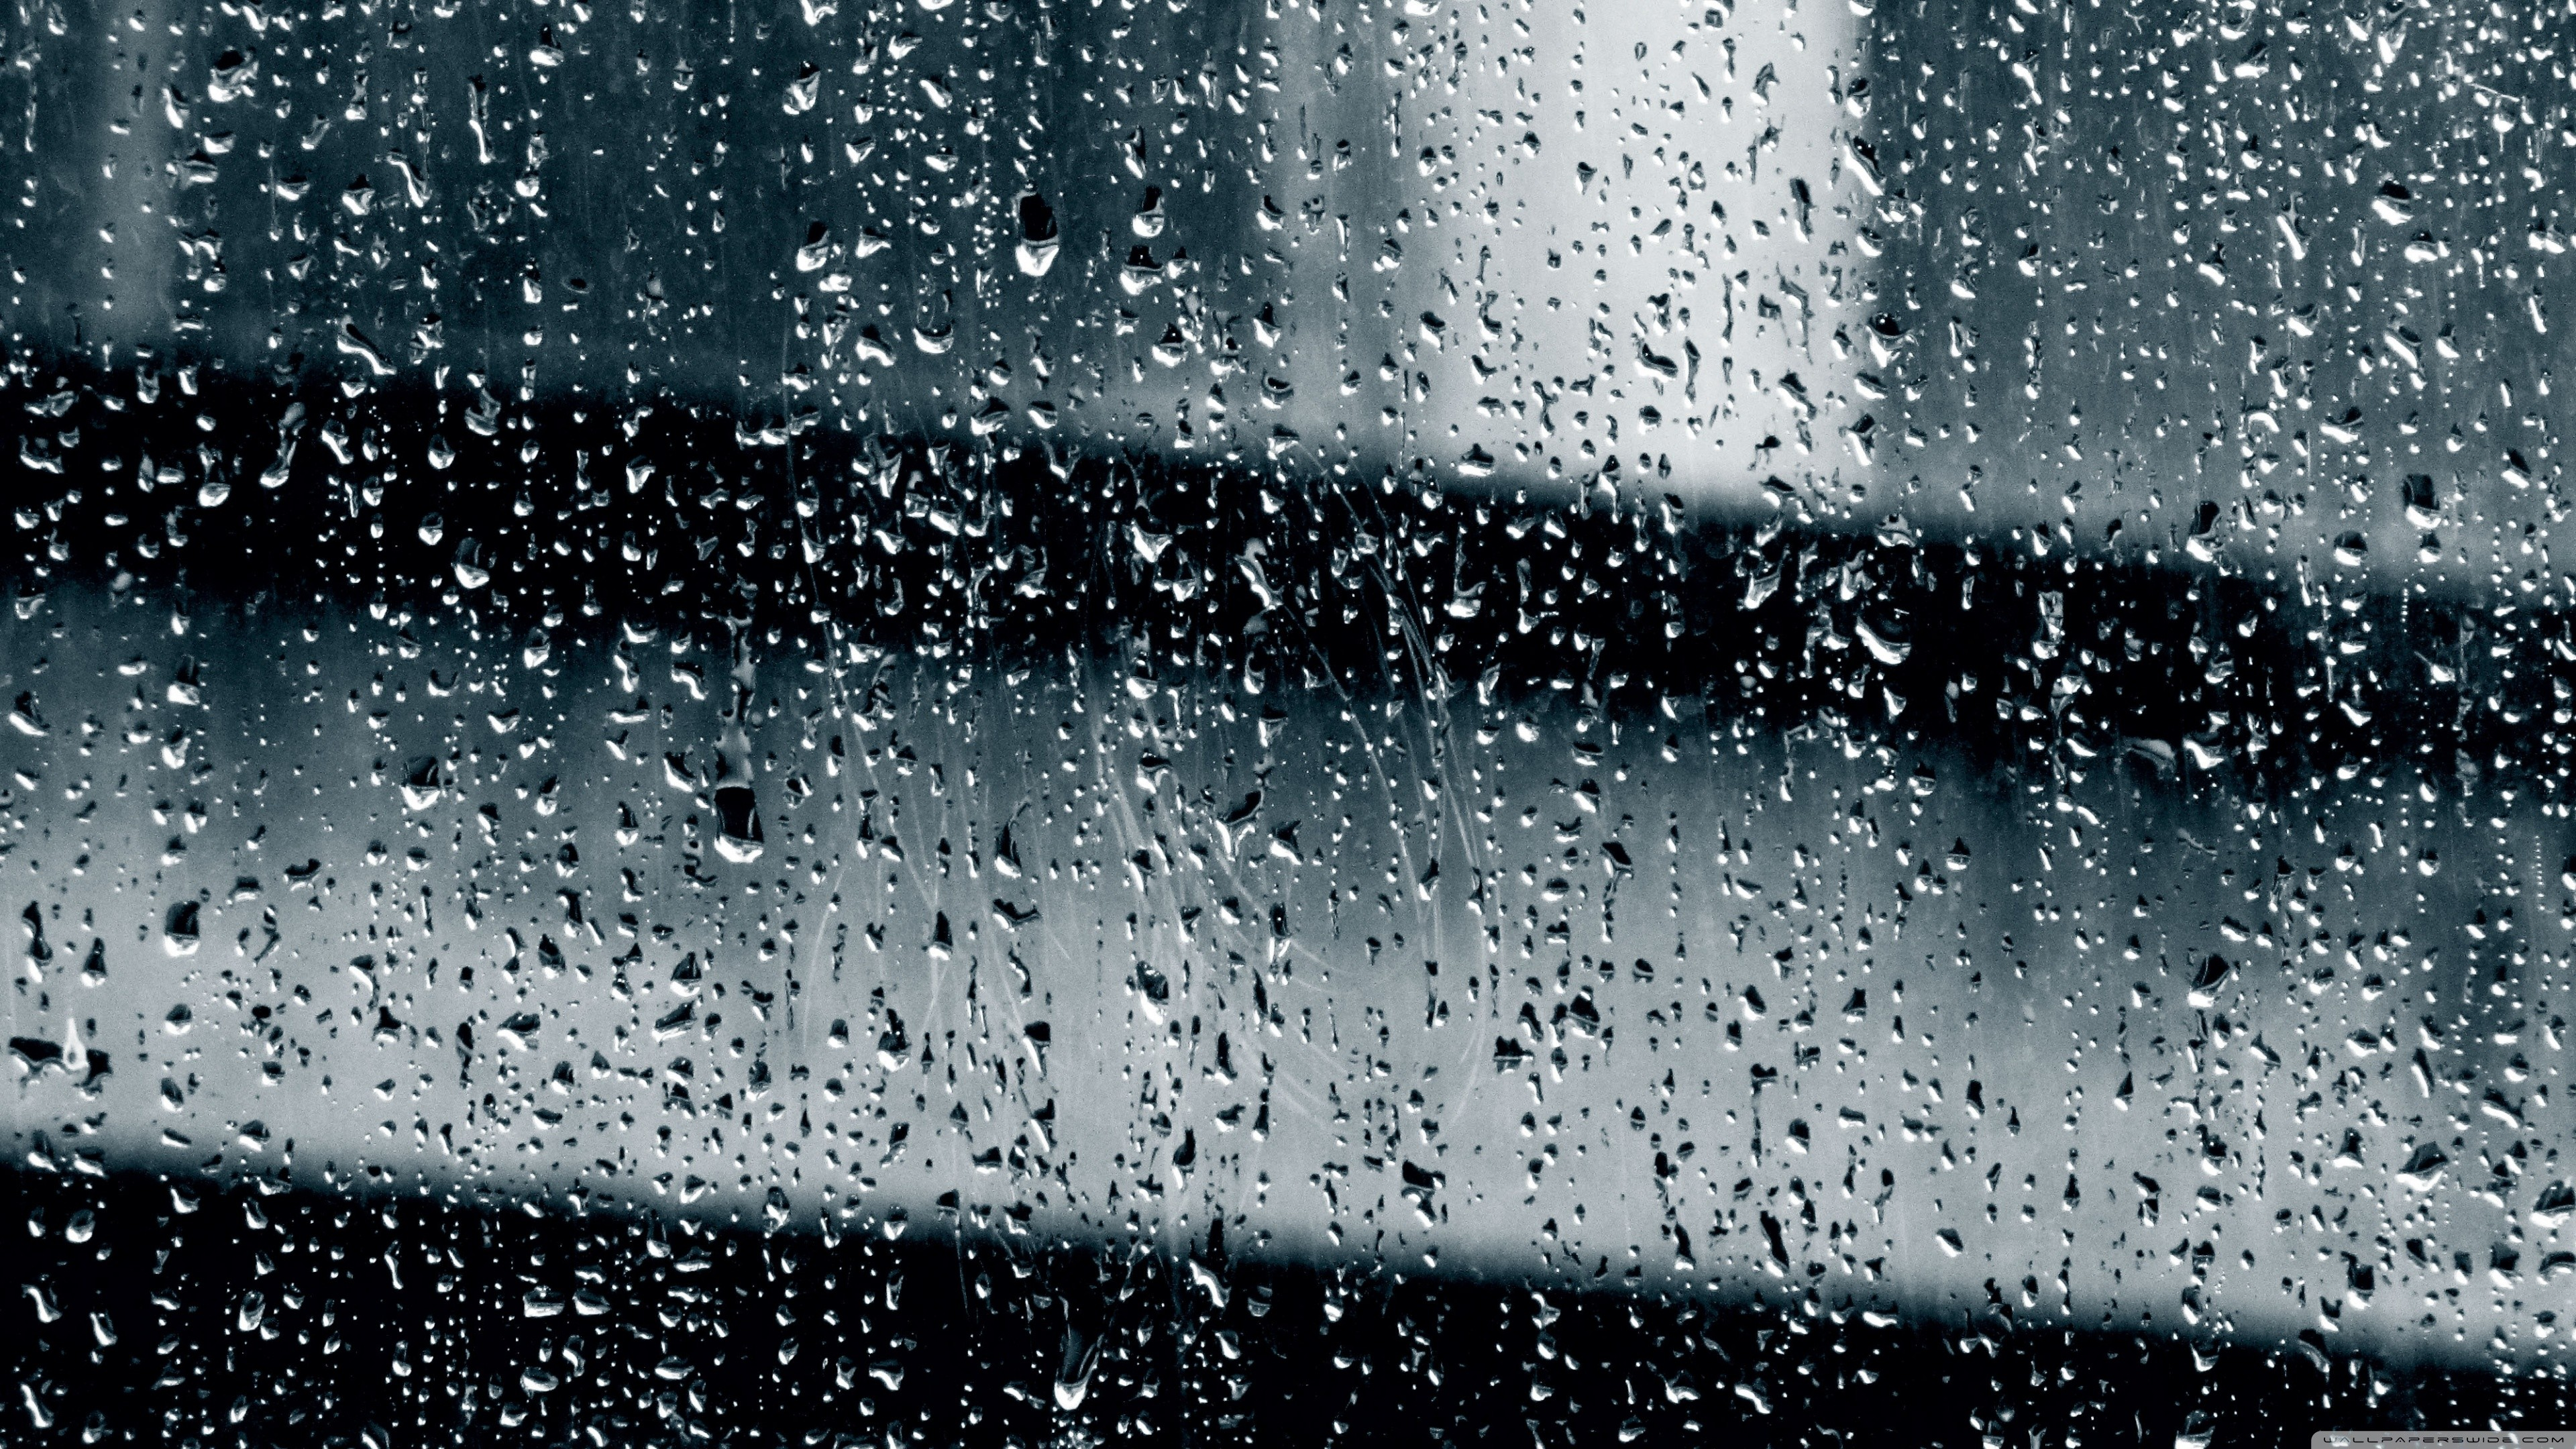 Rainy day wallpapers 62 pictures - Rainy hd wallpaper for pc ...